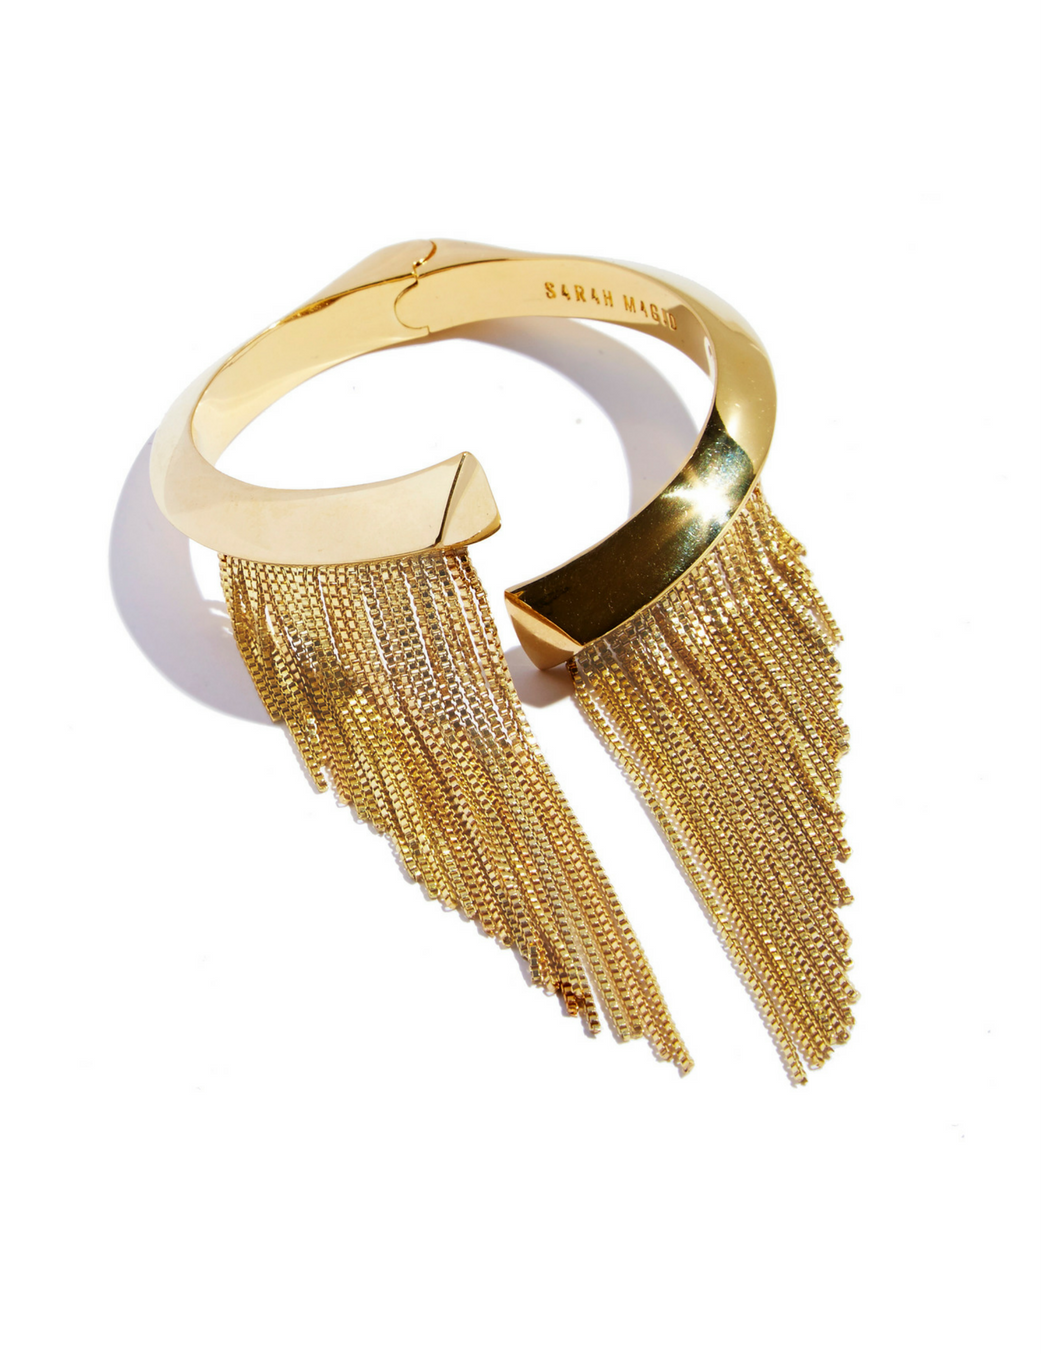 Electric Fringe Cuff by Sarah Magid Jewelry